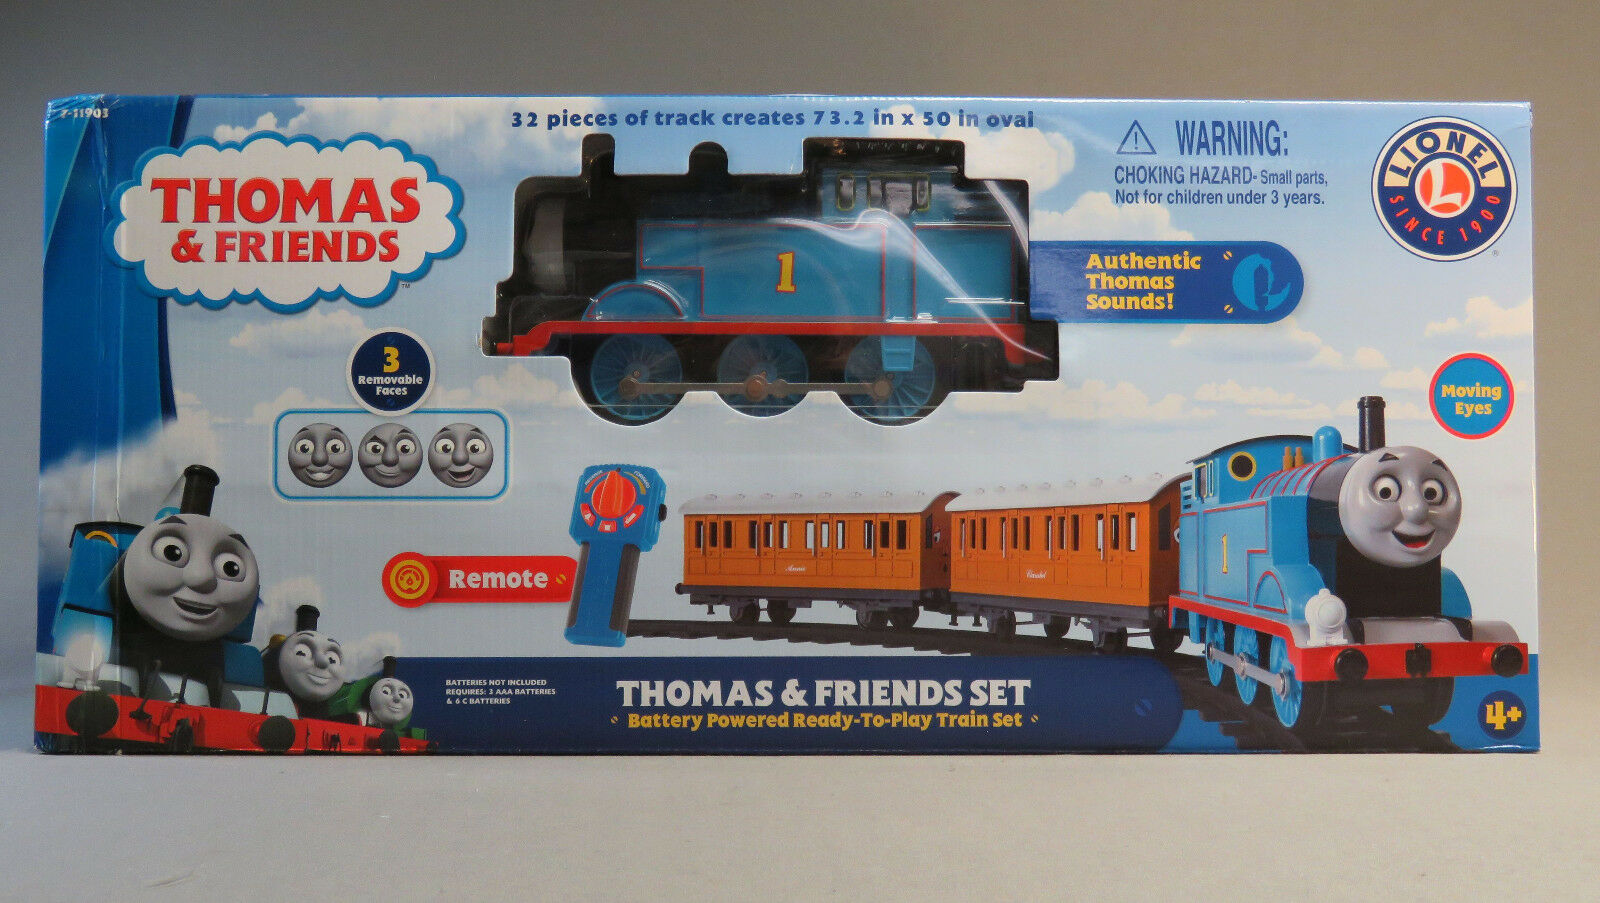 LIONEL LARGE LARGE LARGE SCALE THOMAS & FRIENDS READY TO PLAY TRAIN SET steam 7-11903 NEW 9ec946